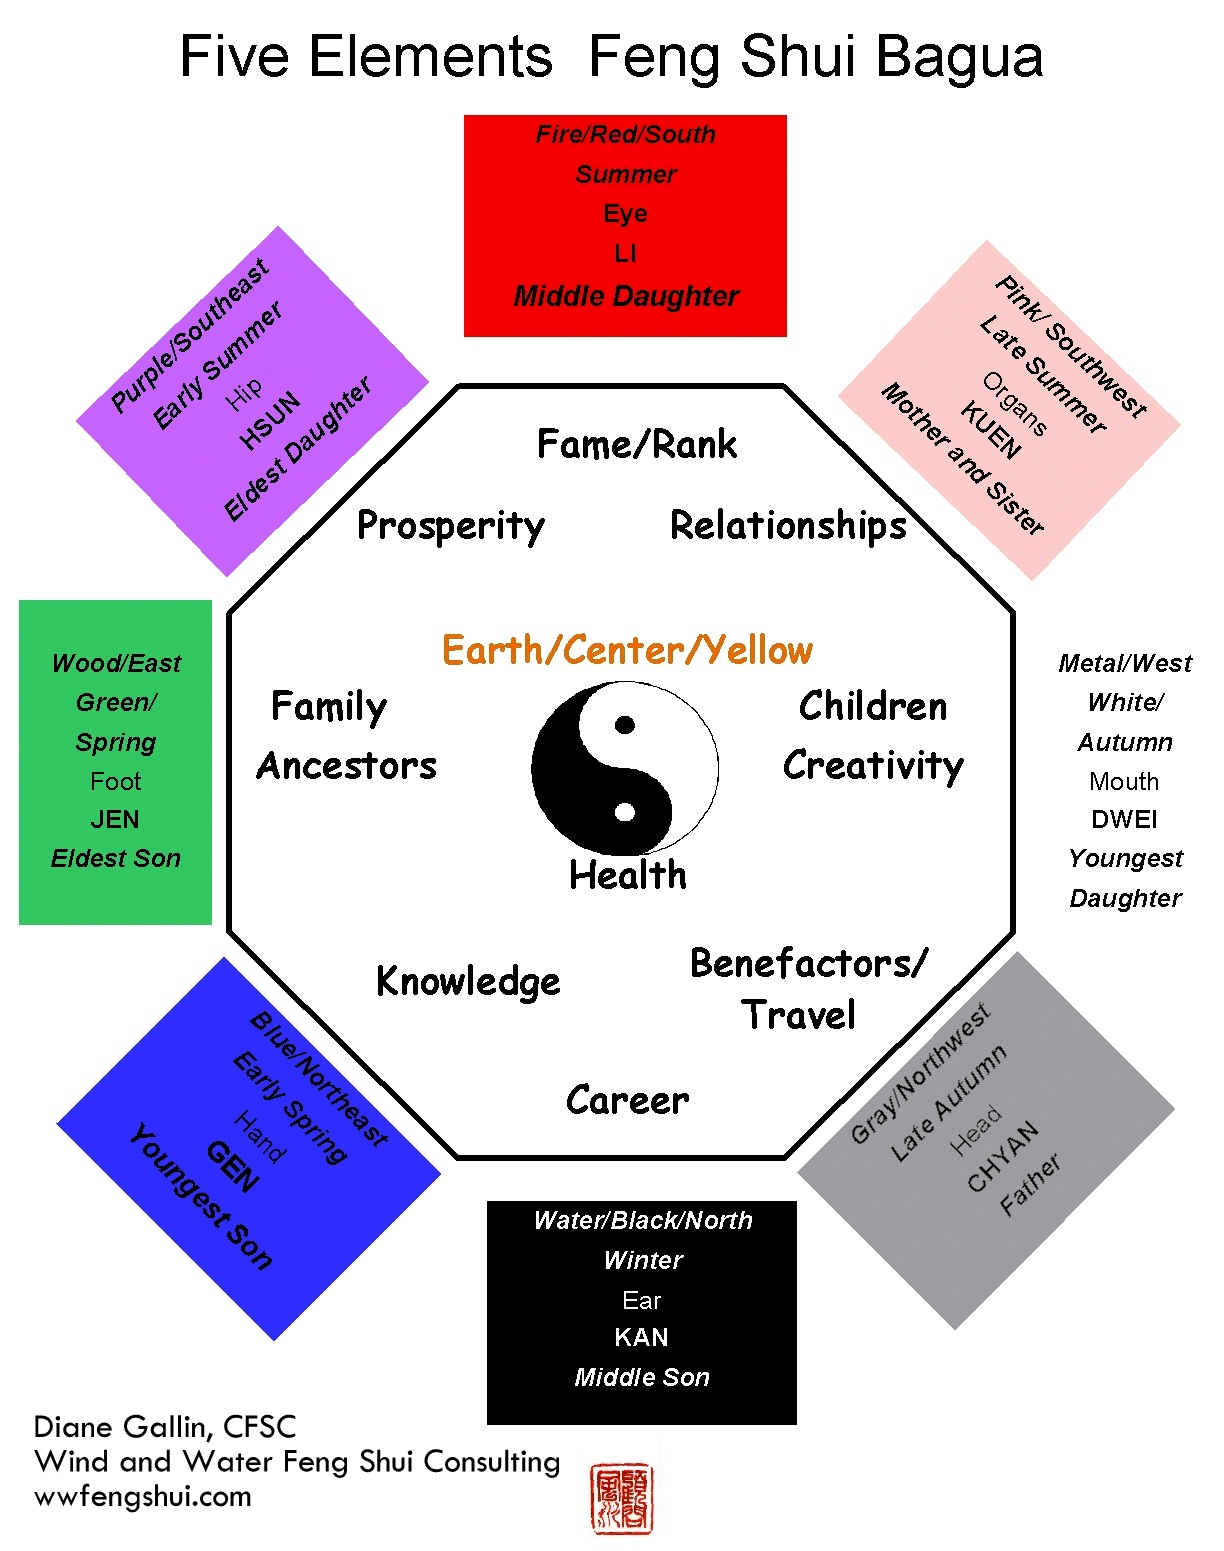 The feng shui bagua wind and water feng shui consulting for Photos feng shui